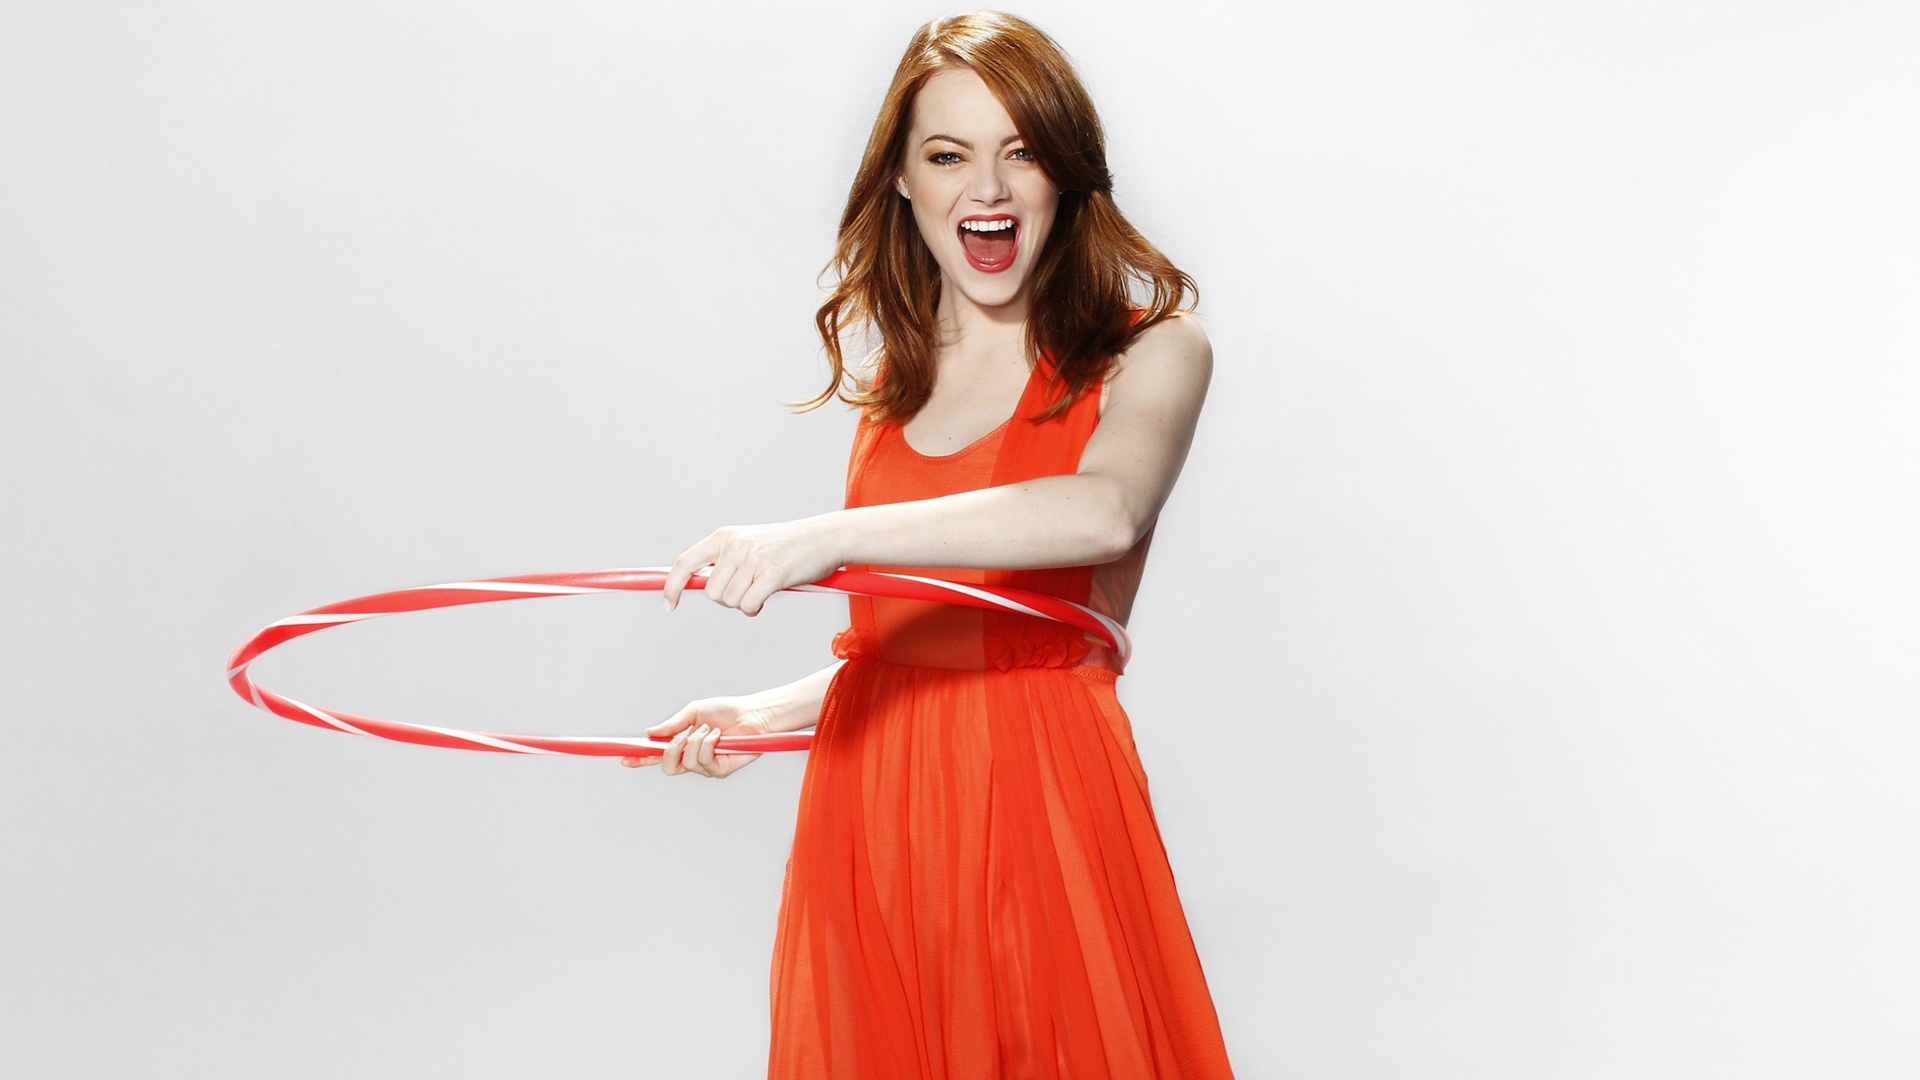 emma stone pictures hd a12